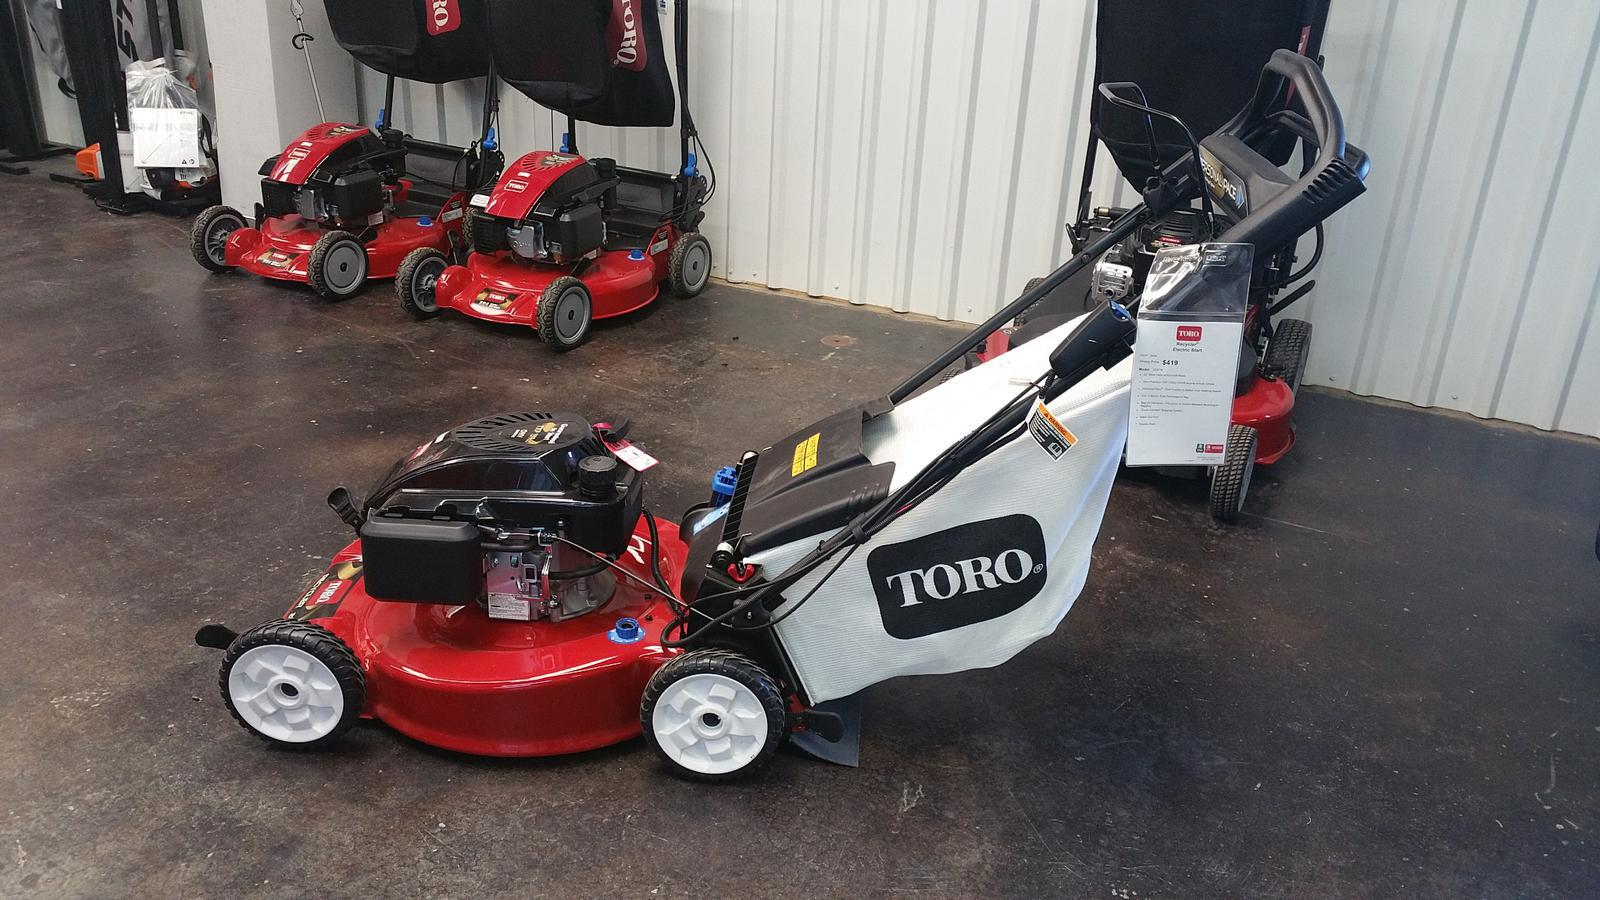 Inventory from Toro Golf Cart Solutions Collinsville, TX (888) 701-8502